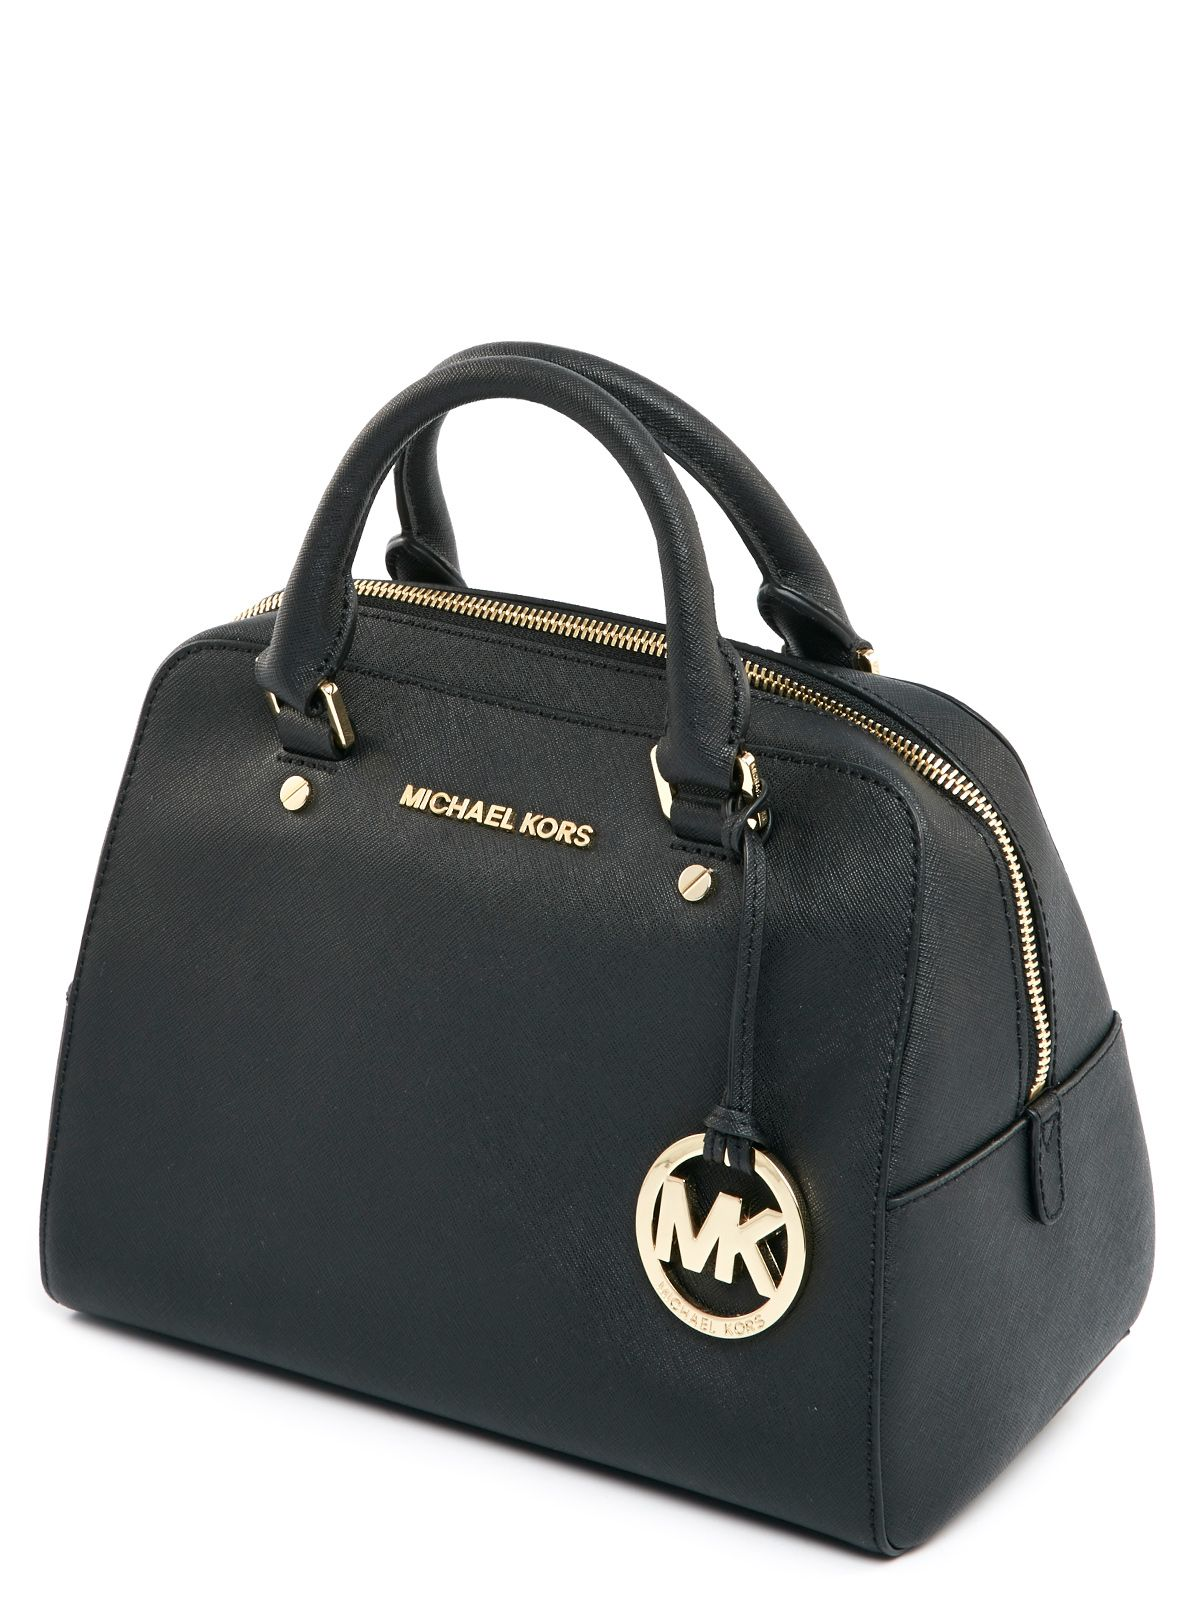 michael kors jet set travel tasche schwarz bags pinterest rucks cke michael kors tasche. Black Bedroom Furniture Sets. Home Design Ideas